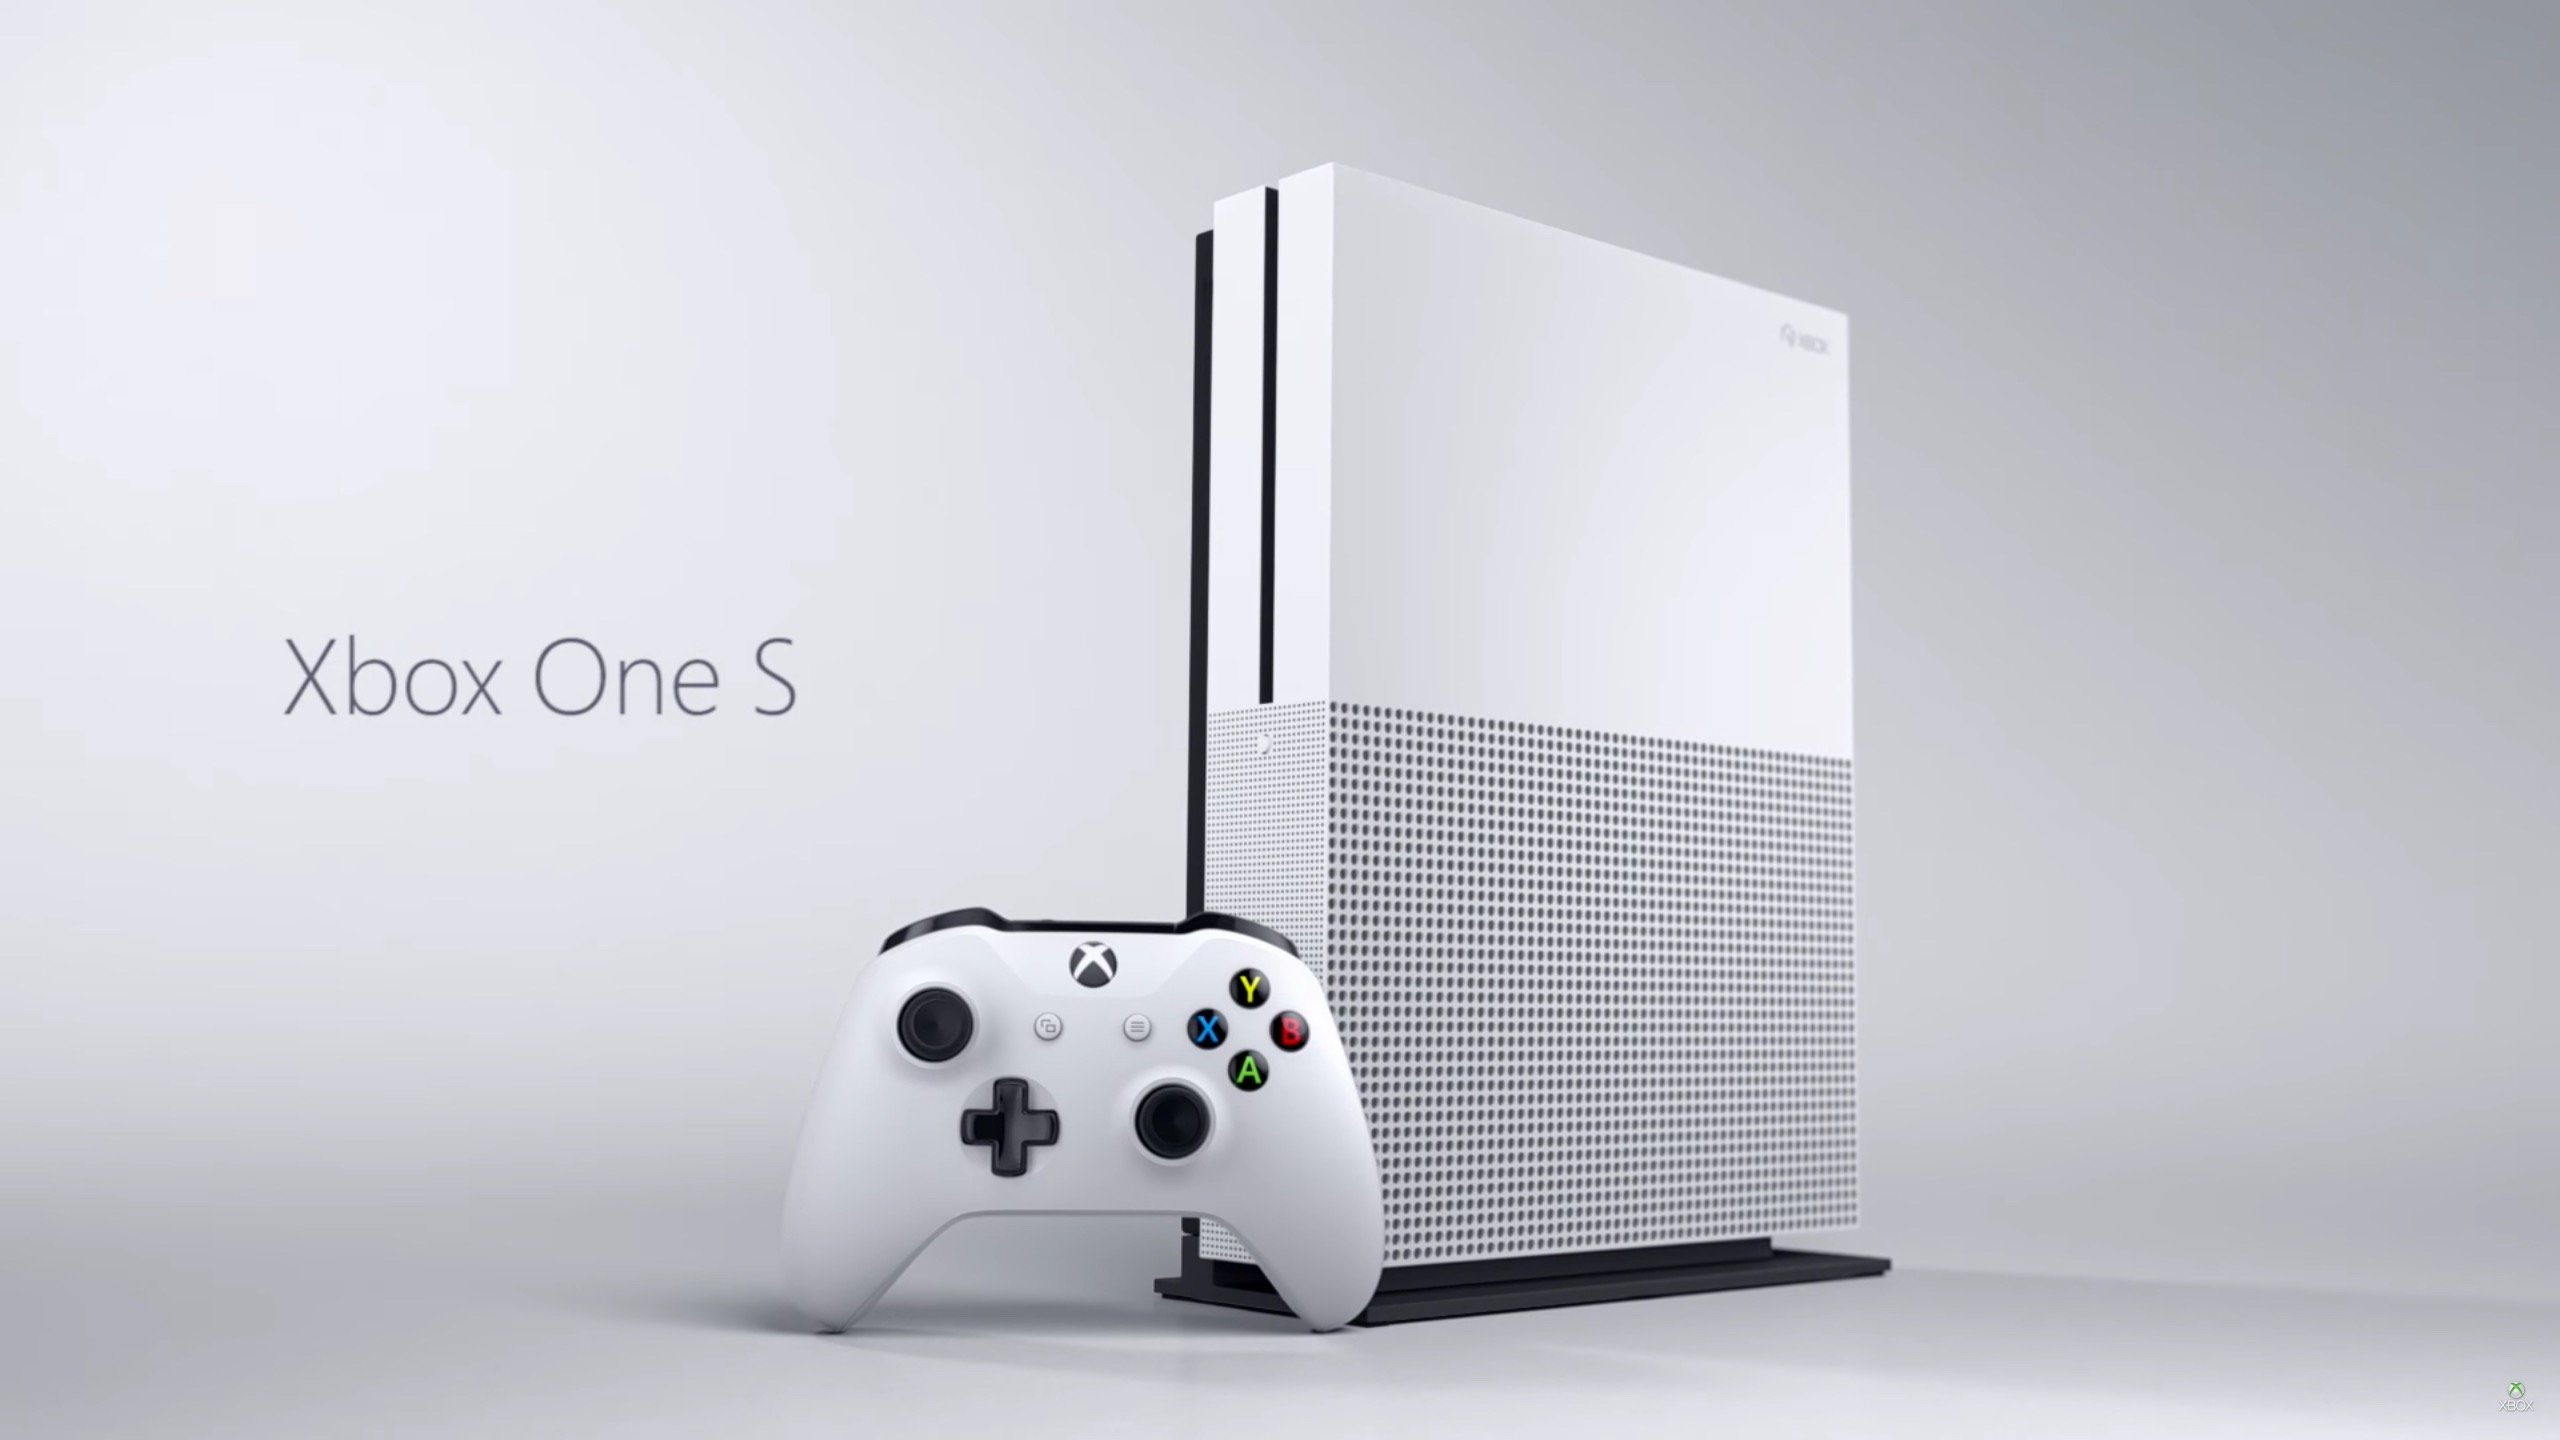 microsoft msft ripped off apple s aapl playbook for its new xbox